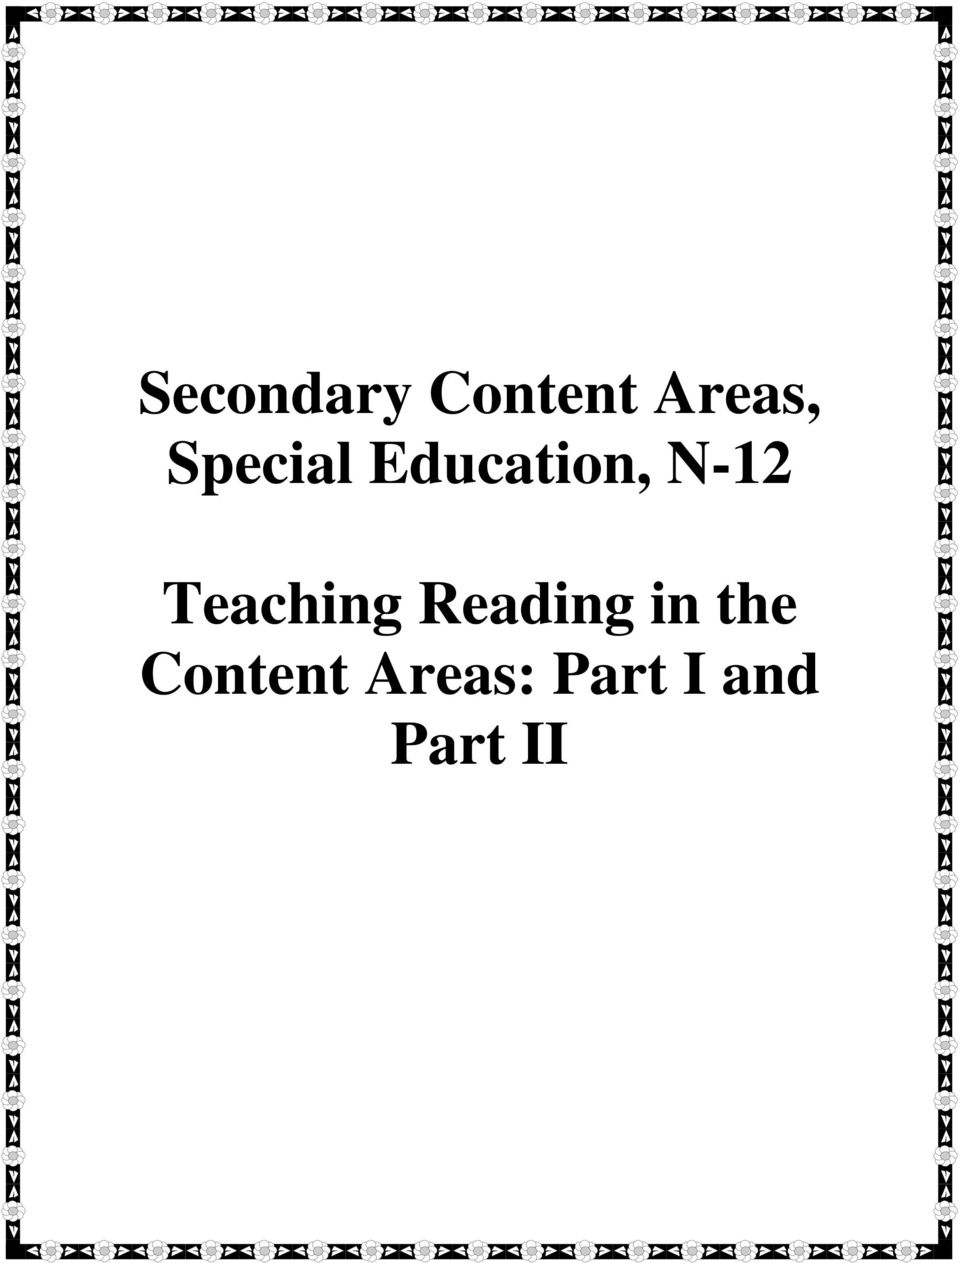 Teaching Reading in the